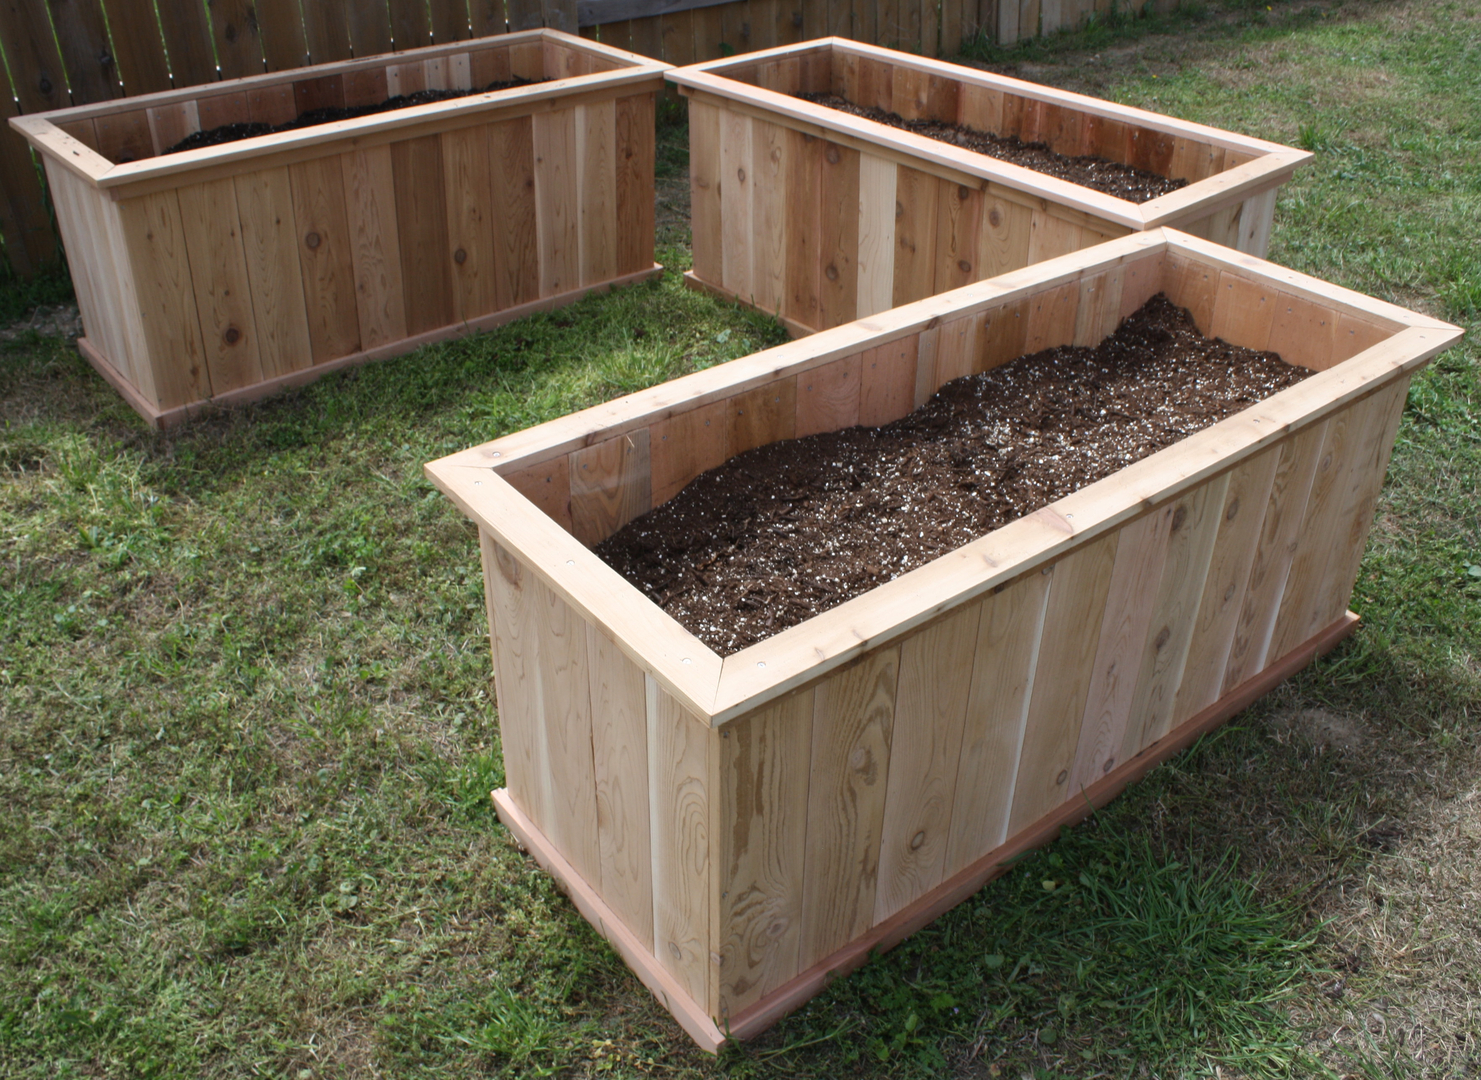 them accesskeyid out are landscaping above planters disposition raising these great making planter ground and boxes level vegetables your cedar alloworigin stand herbs for flowers in